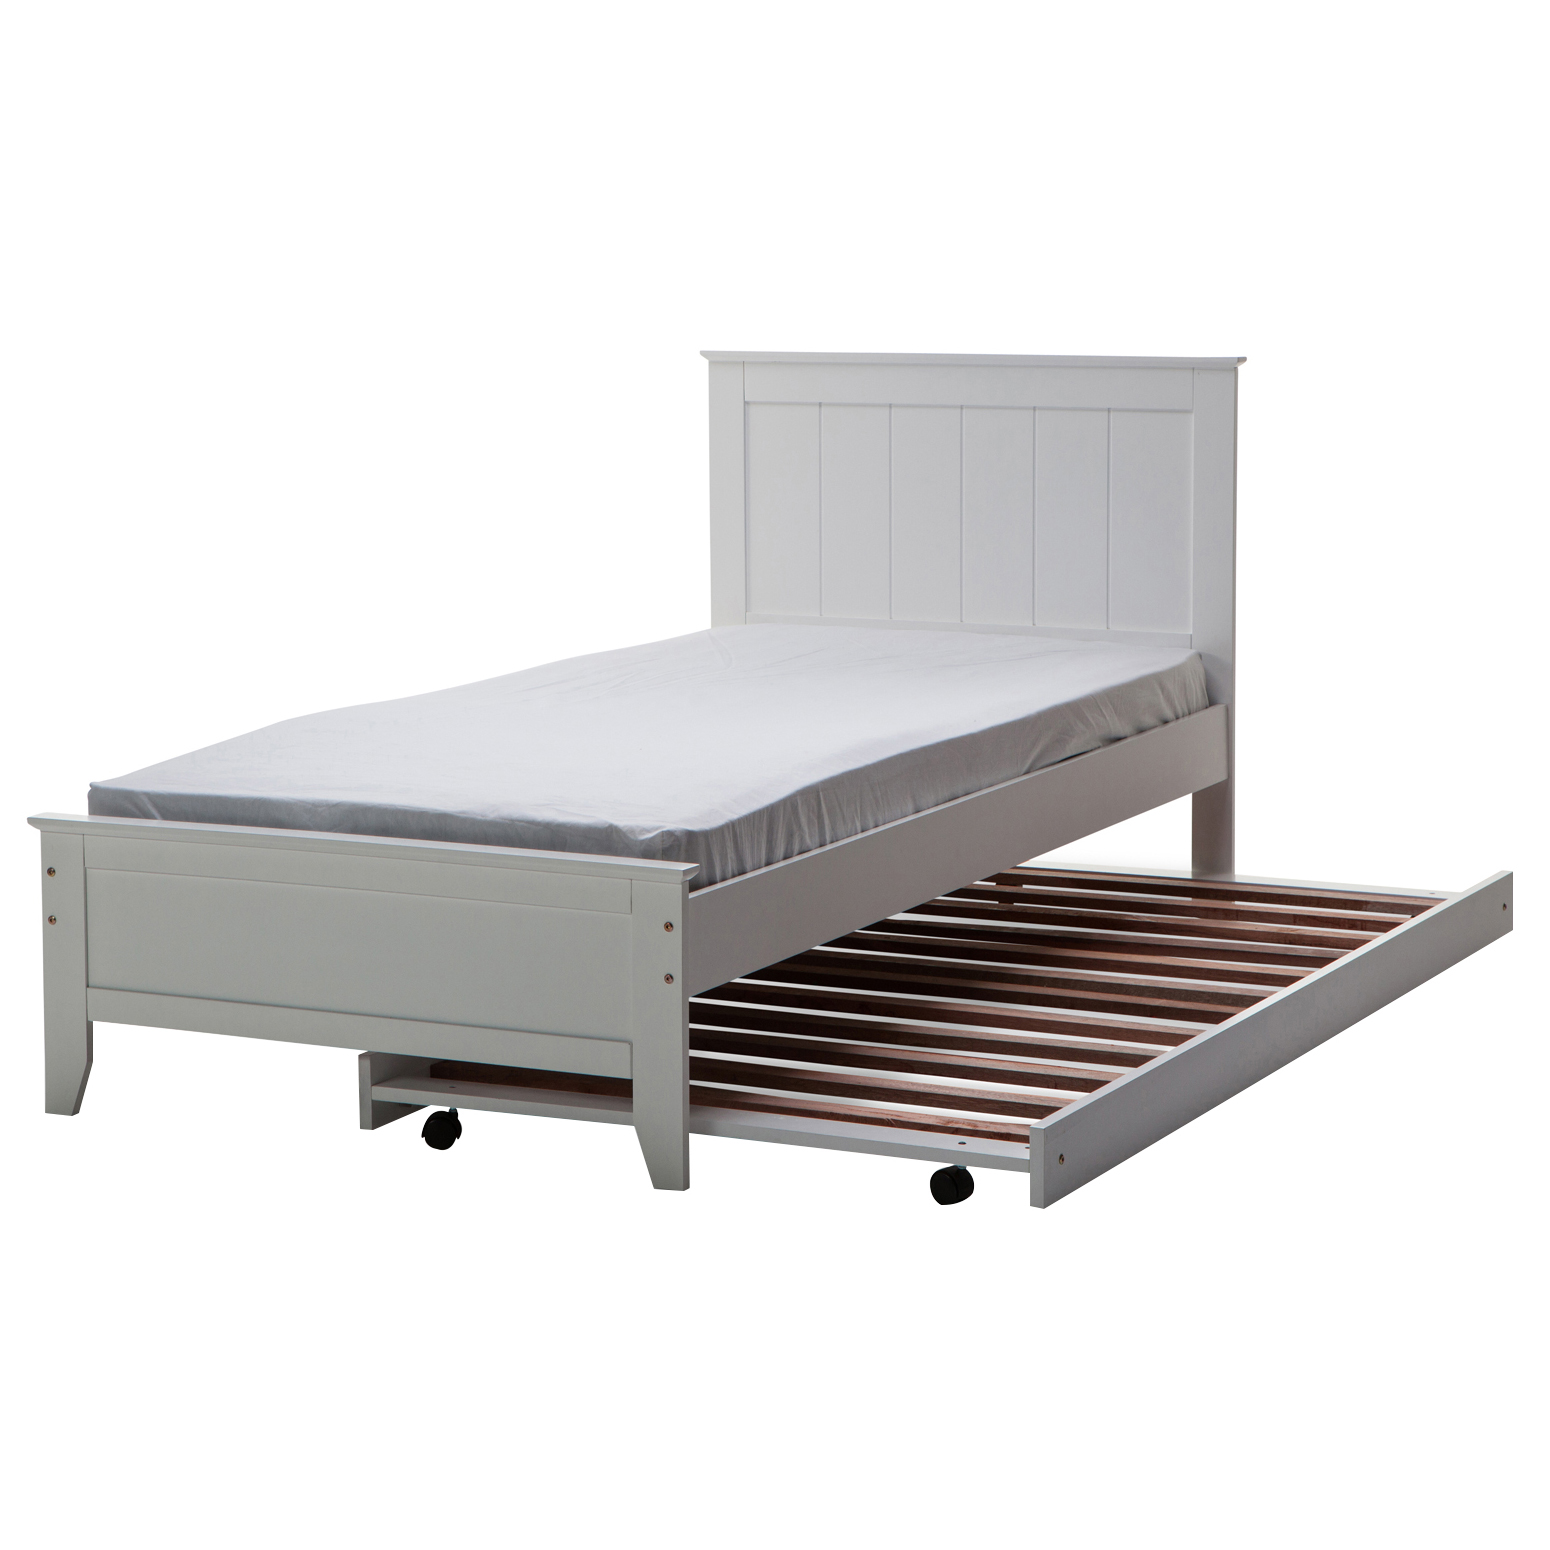 King single beds with trundle : Dallas solid rubber wood mdf white single king bed